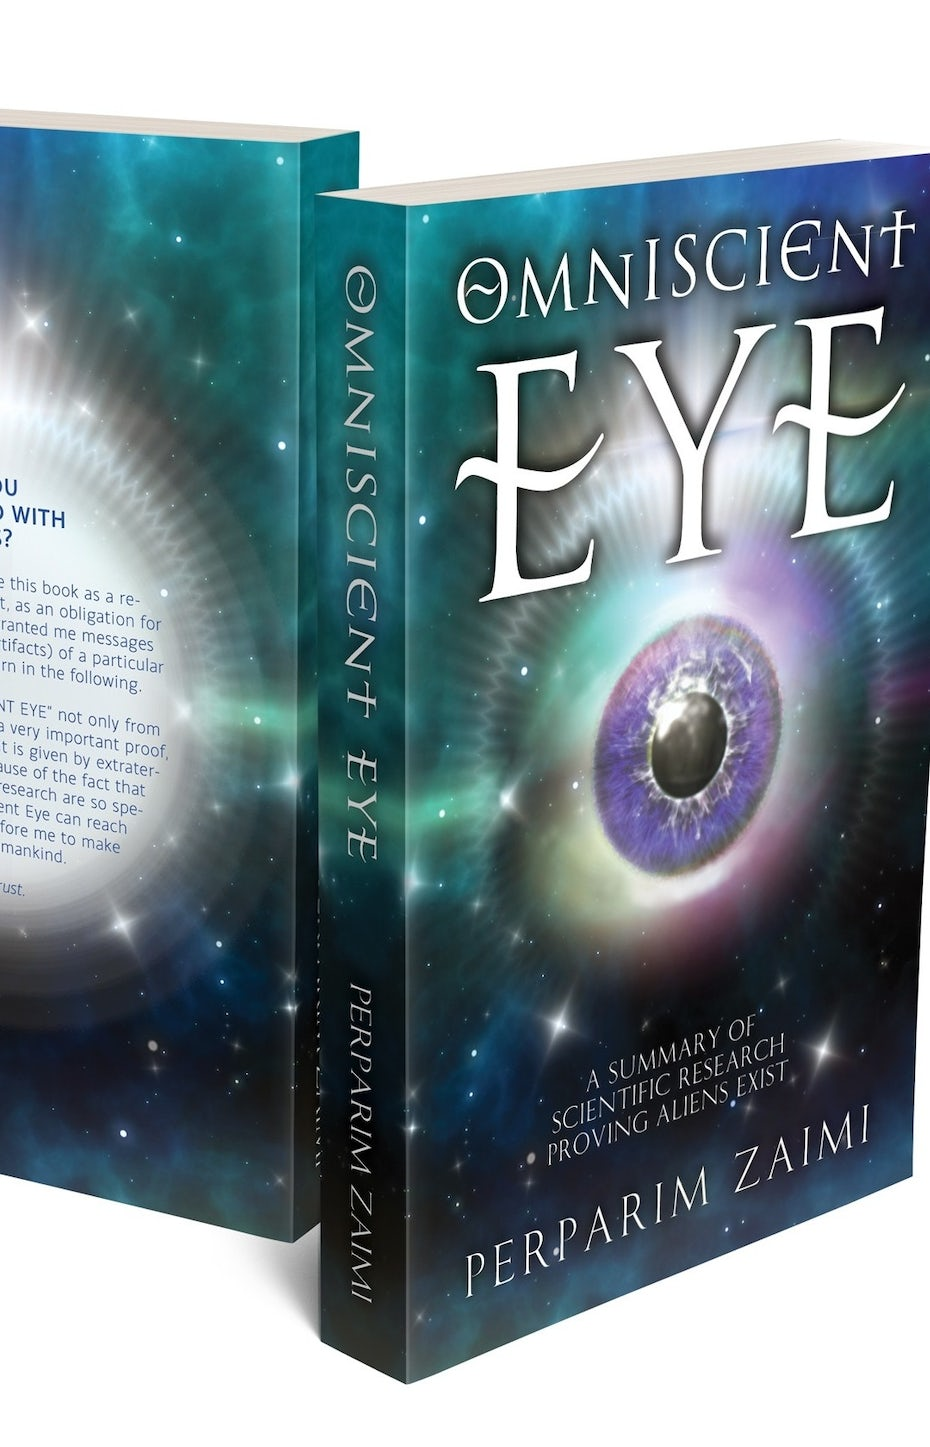 Eye nebula and custom typesetting